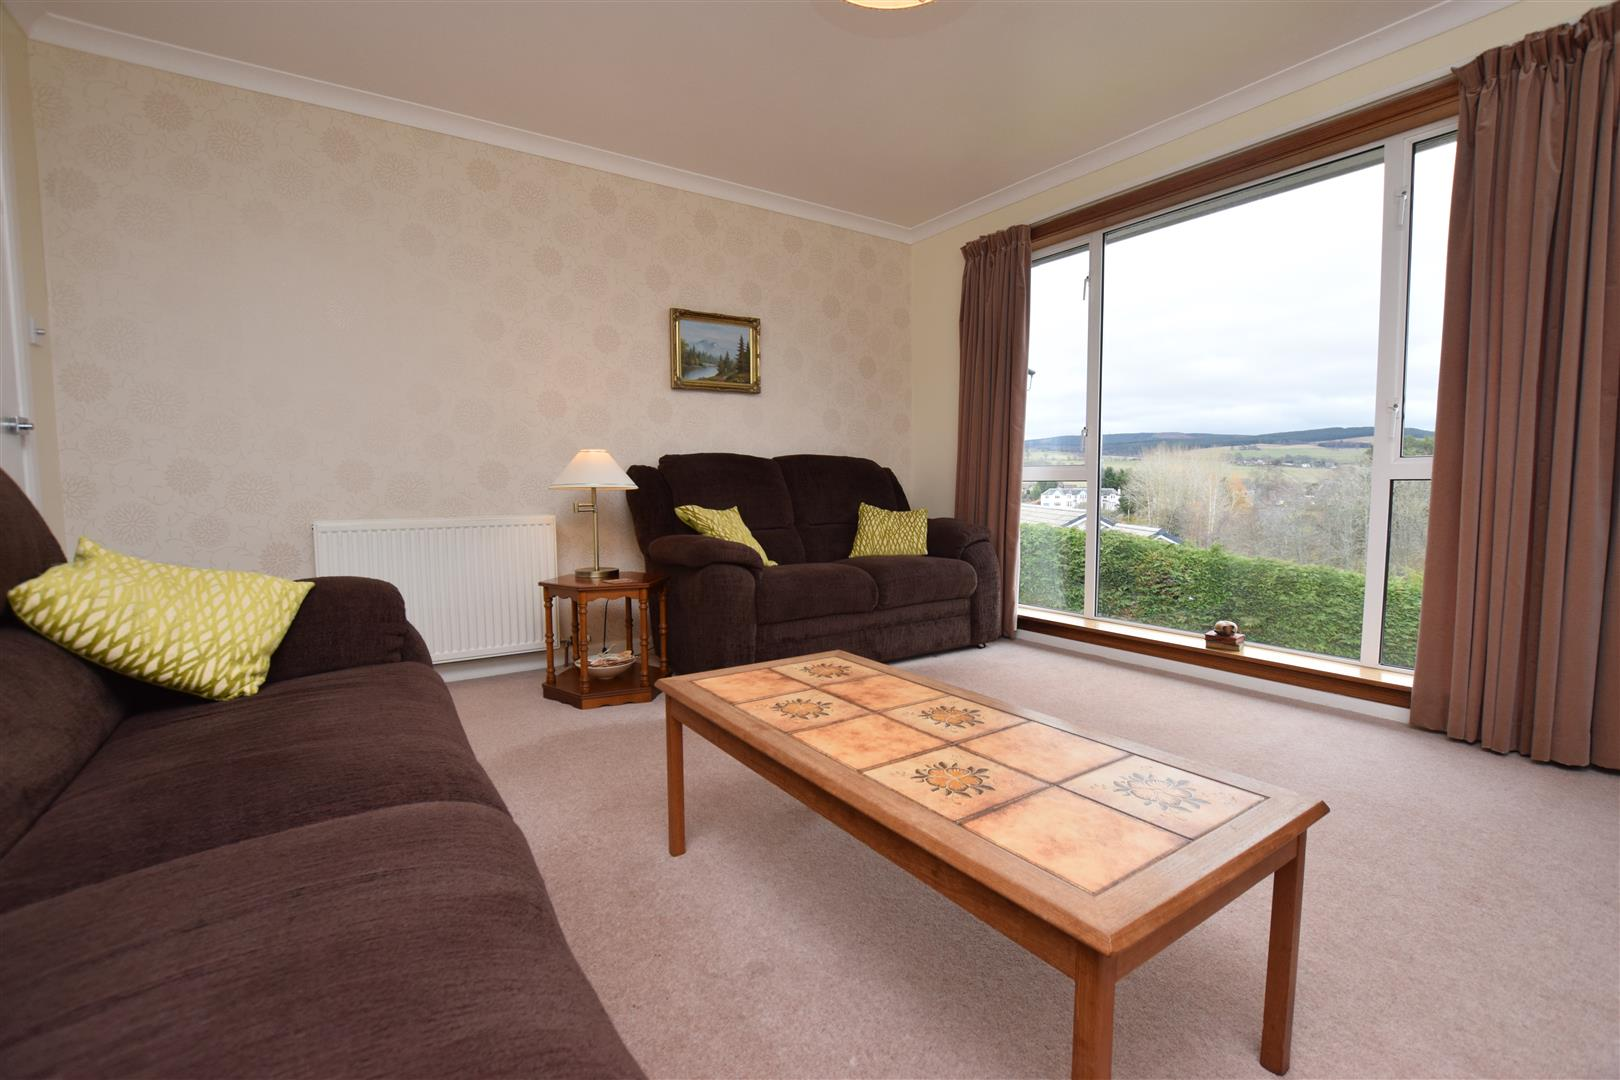 3A, Robertson Crescent, Pitlochry, Perthshire, PH16 5HD, UK